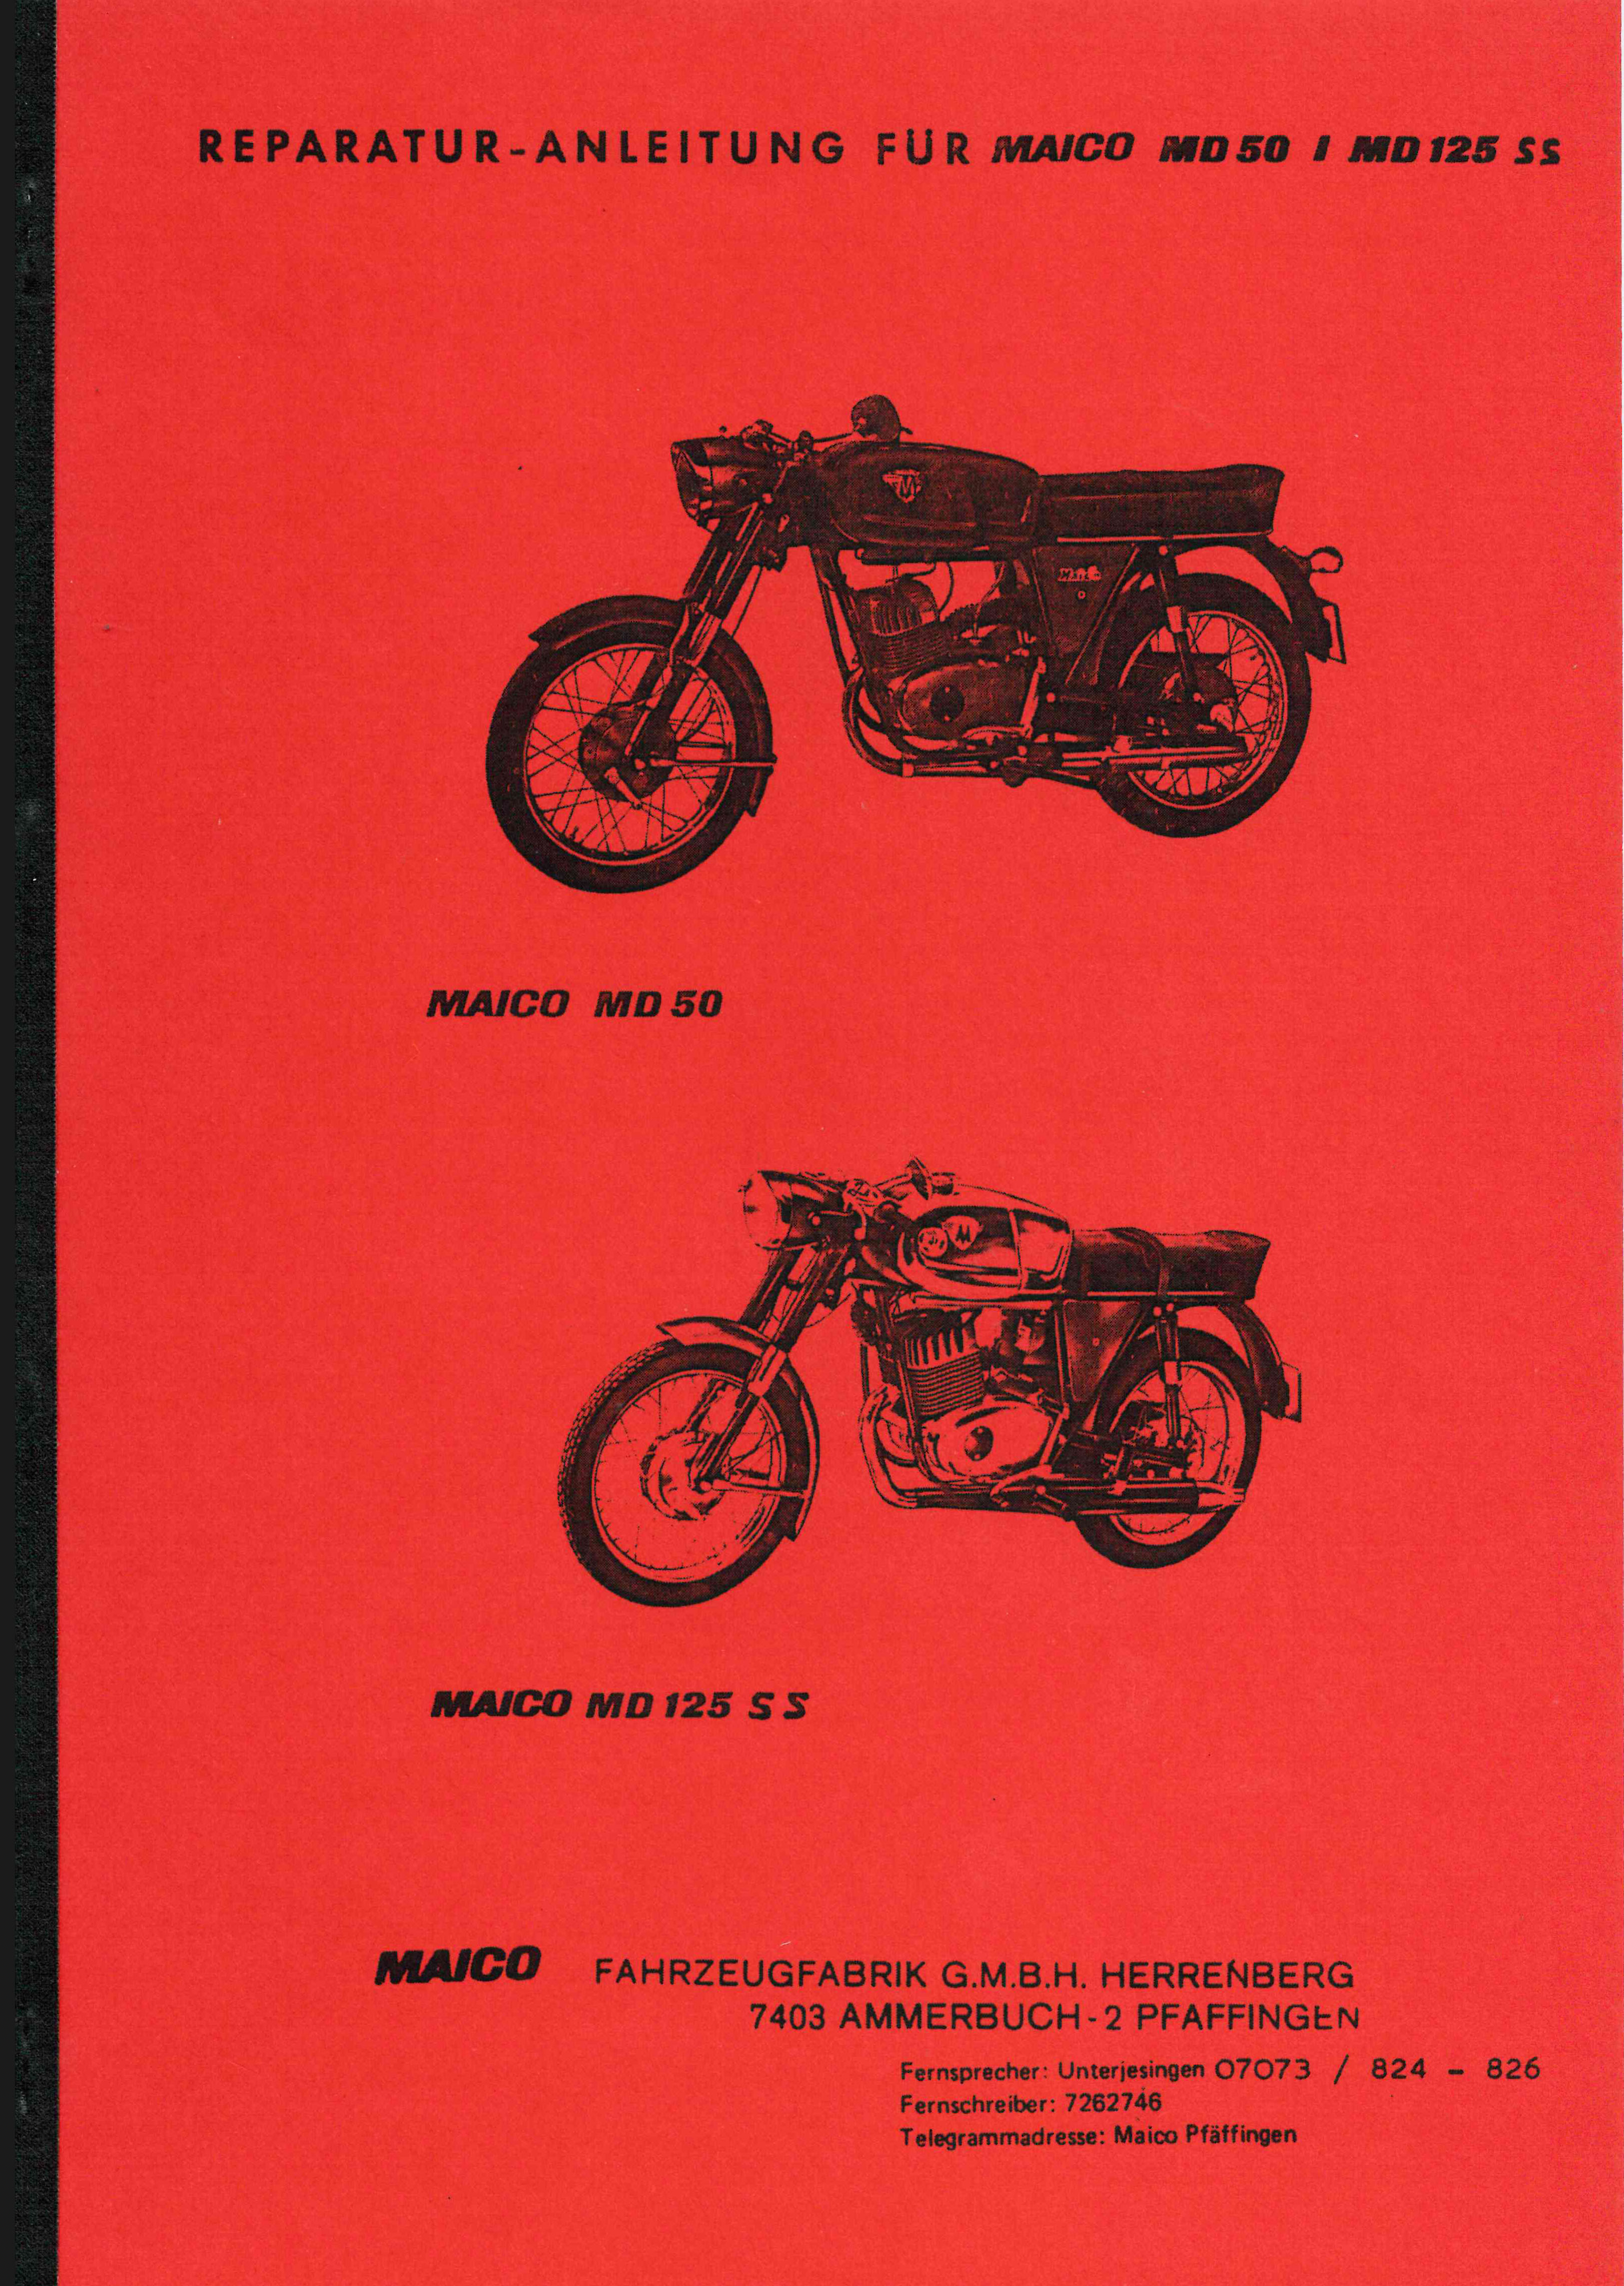 Moped-Garage.net | Maico MD 50 MD 125 SS RS 125 Reparatur Anleitung ...